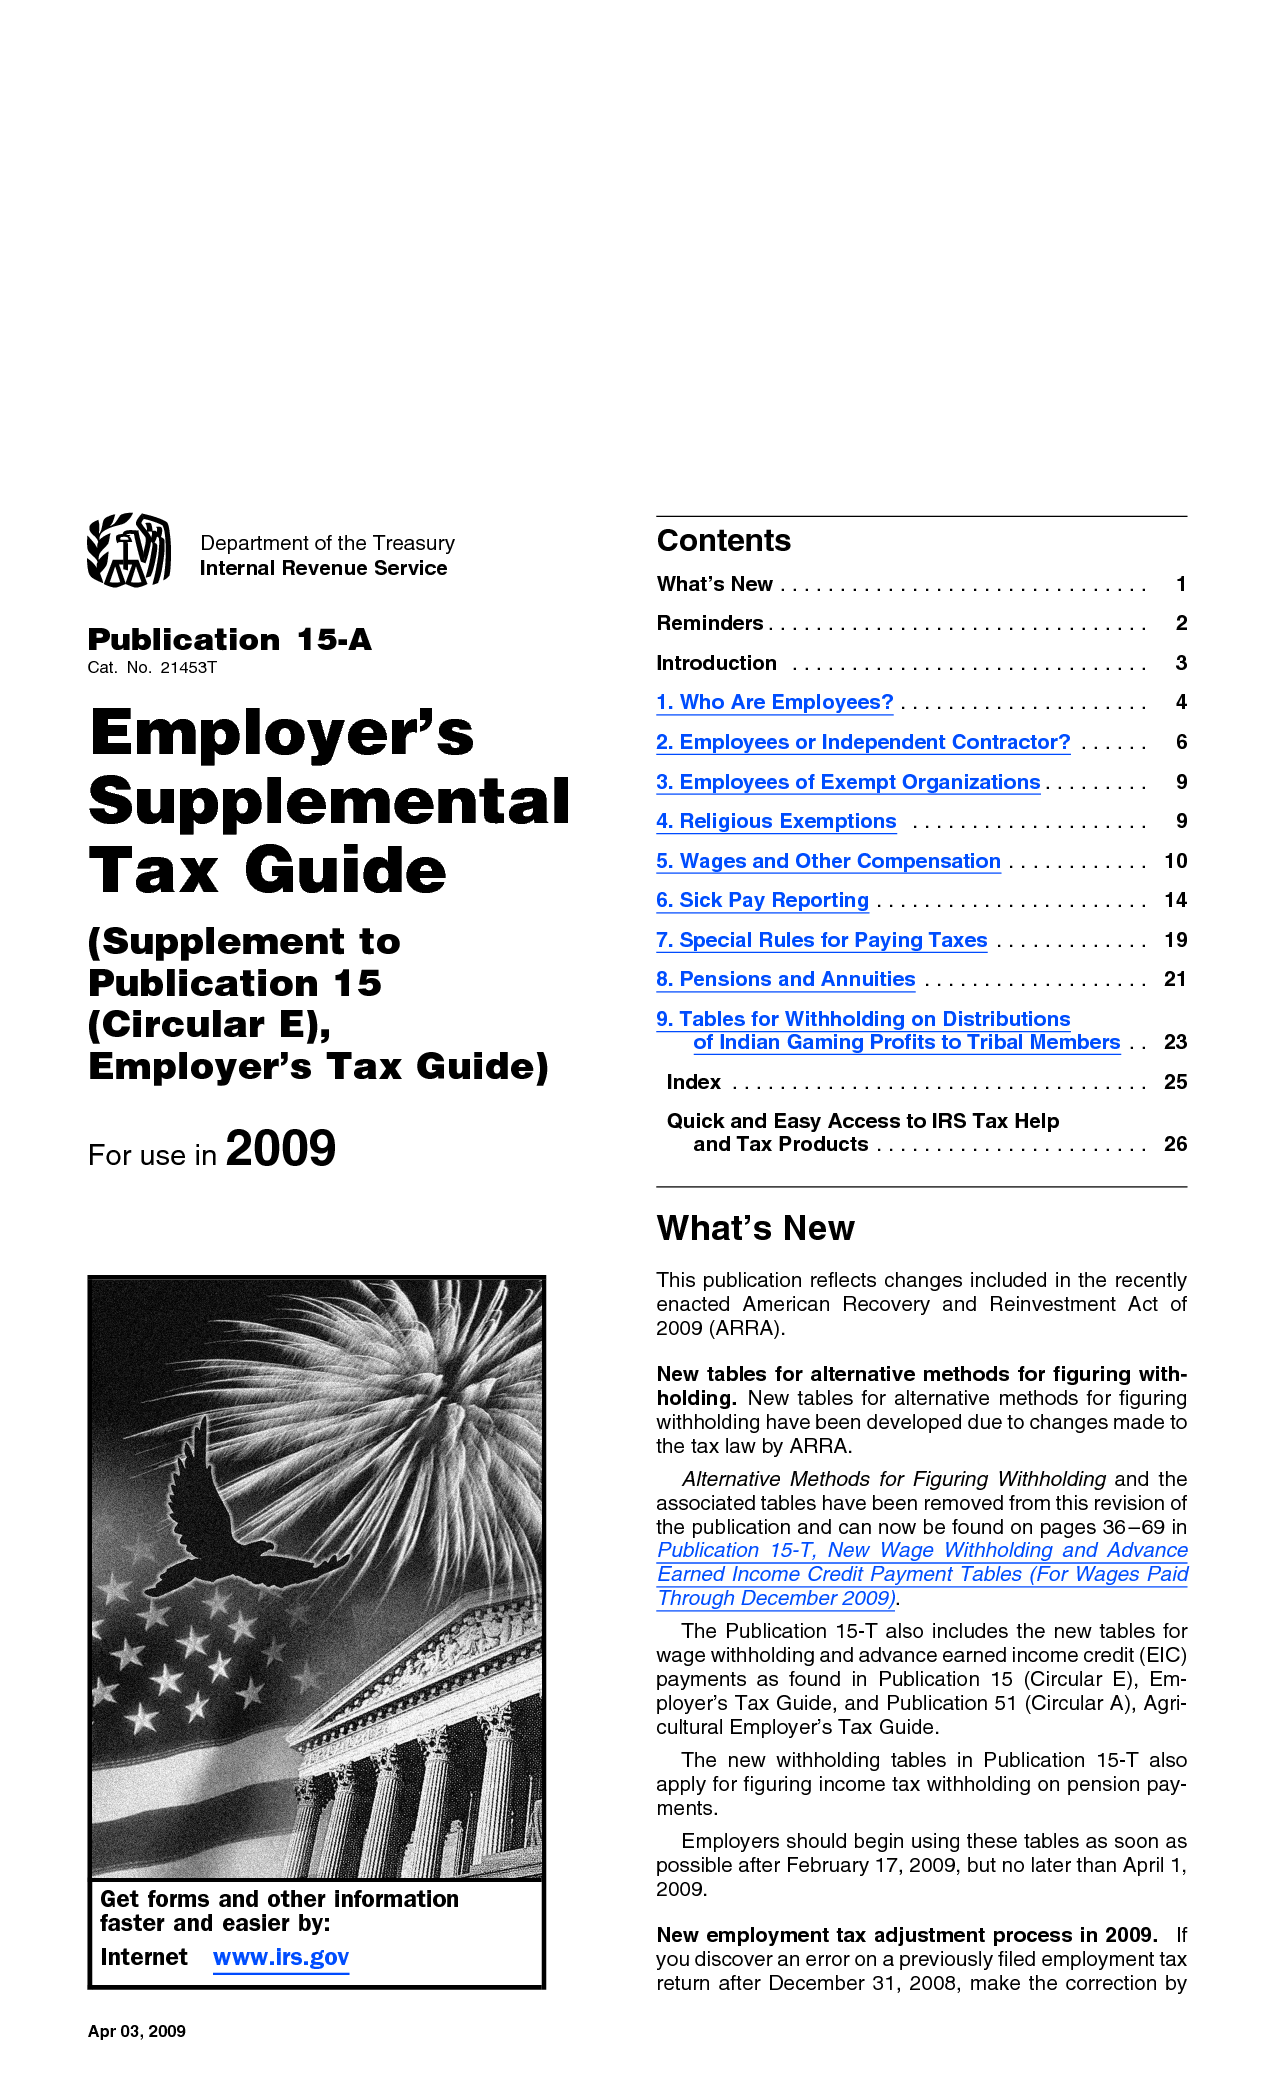 Supplement to Publication 15 (Circular E), Employer's Tax Guide - Google  Search